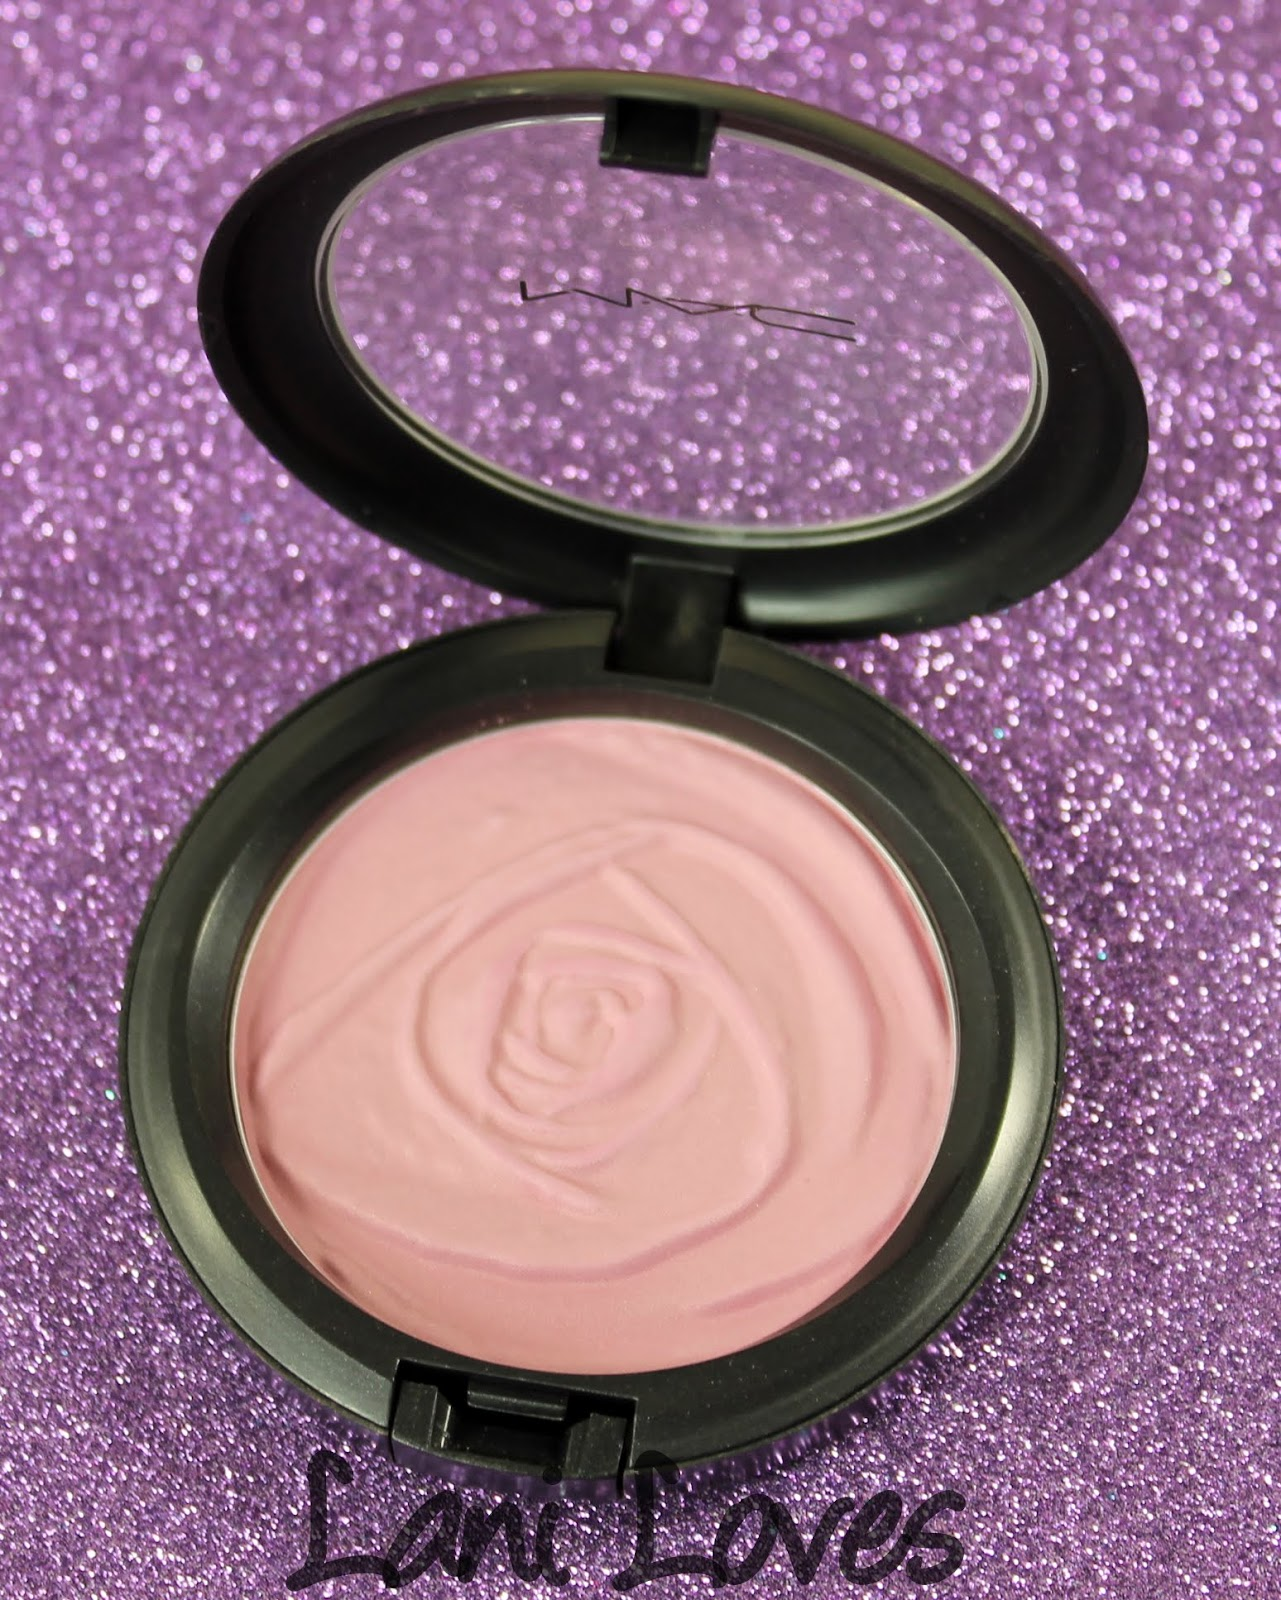 MAC Monday: Summer Rose Beauty Powder Swatches & Review